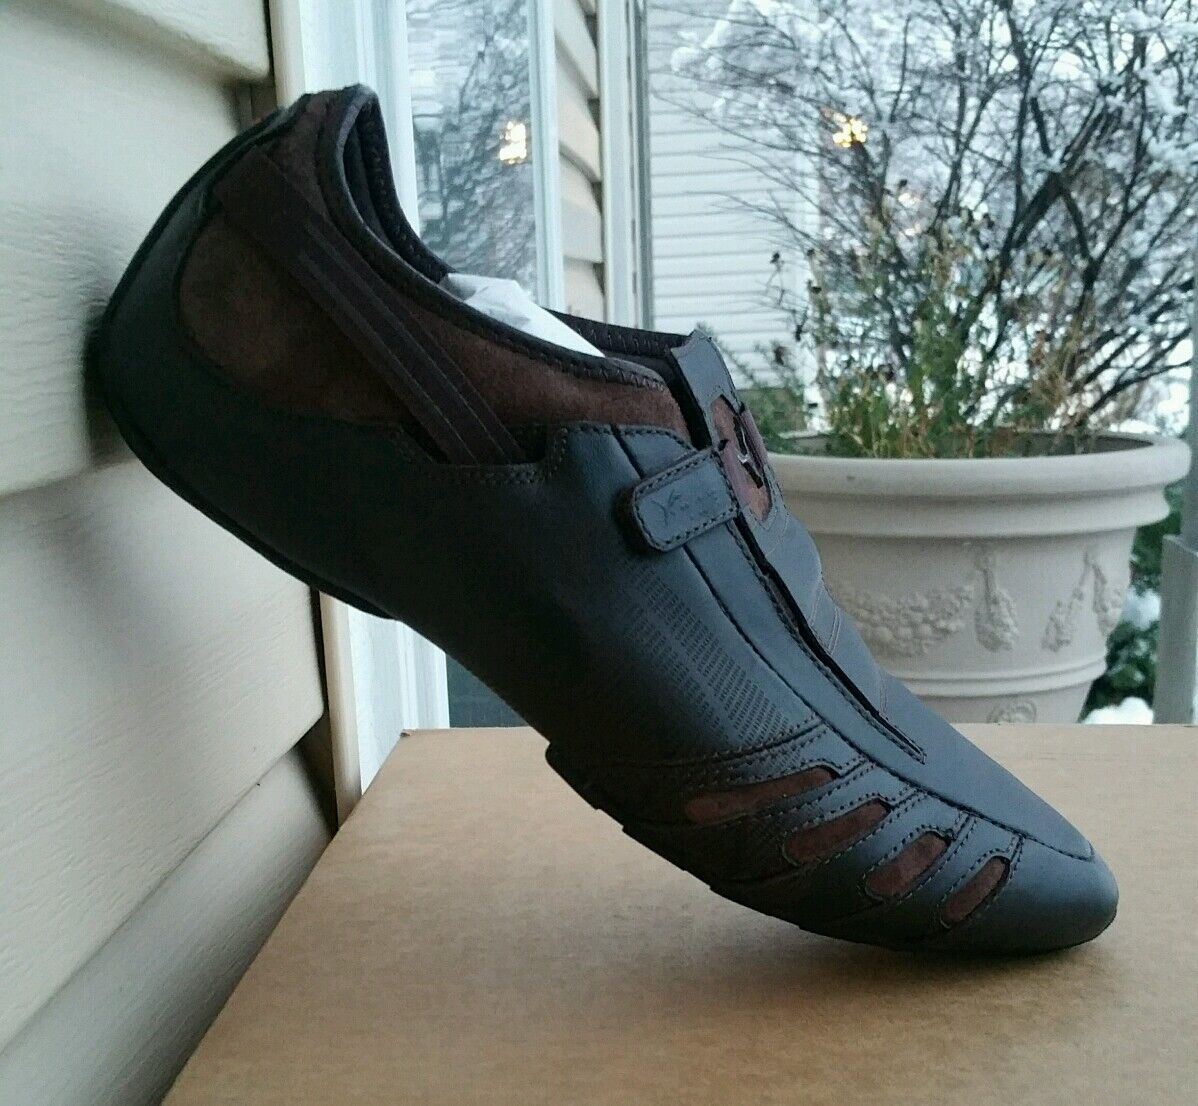 NEW** PUMA VEDANO V LEATHER MEN'S SHOES COFFEE BROWN ALL SIZES CASUAL DRESS ATHL